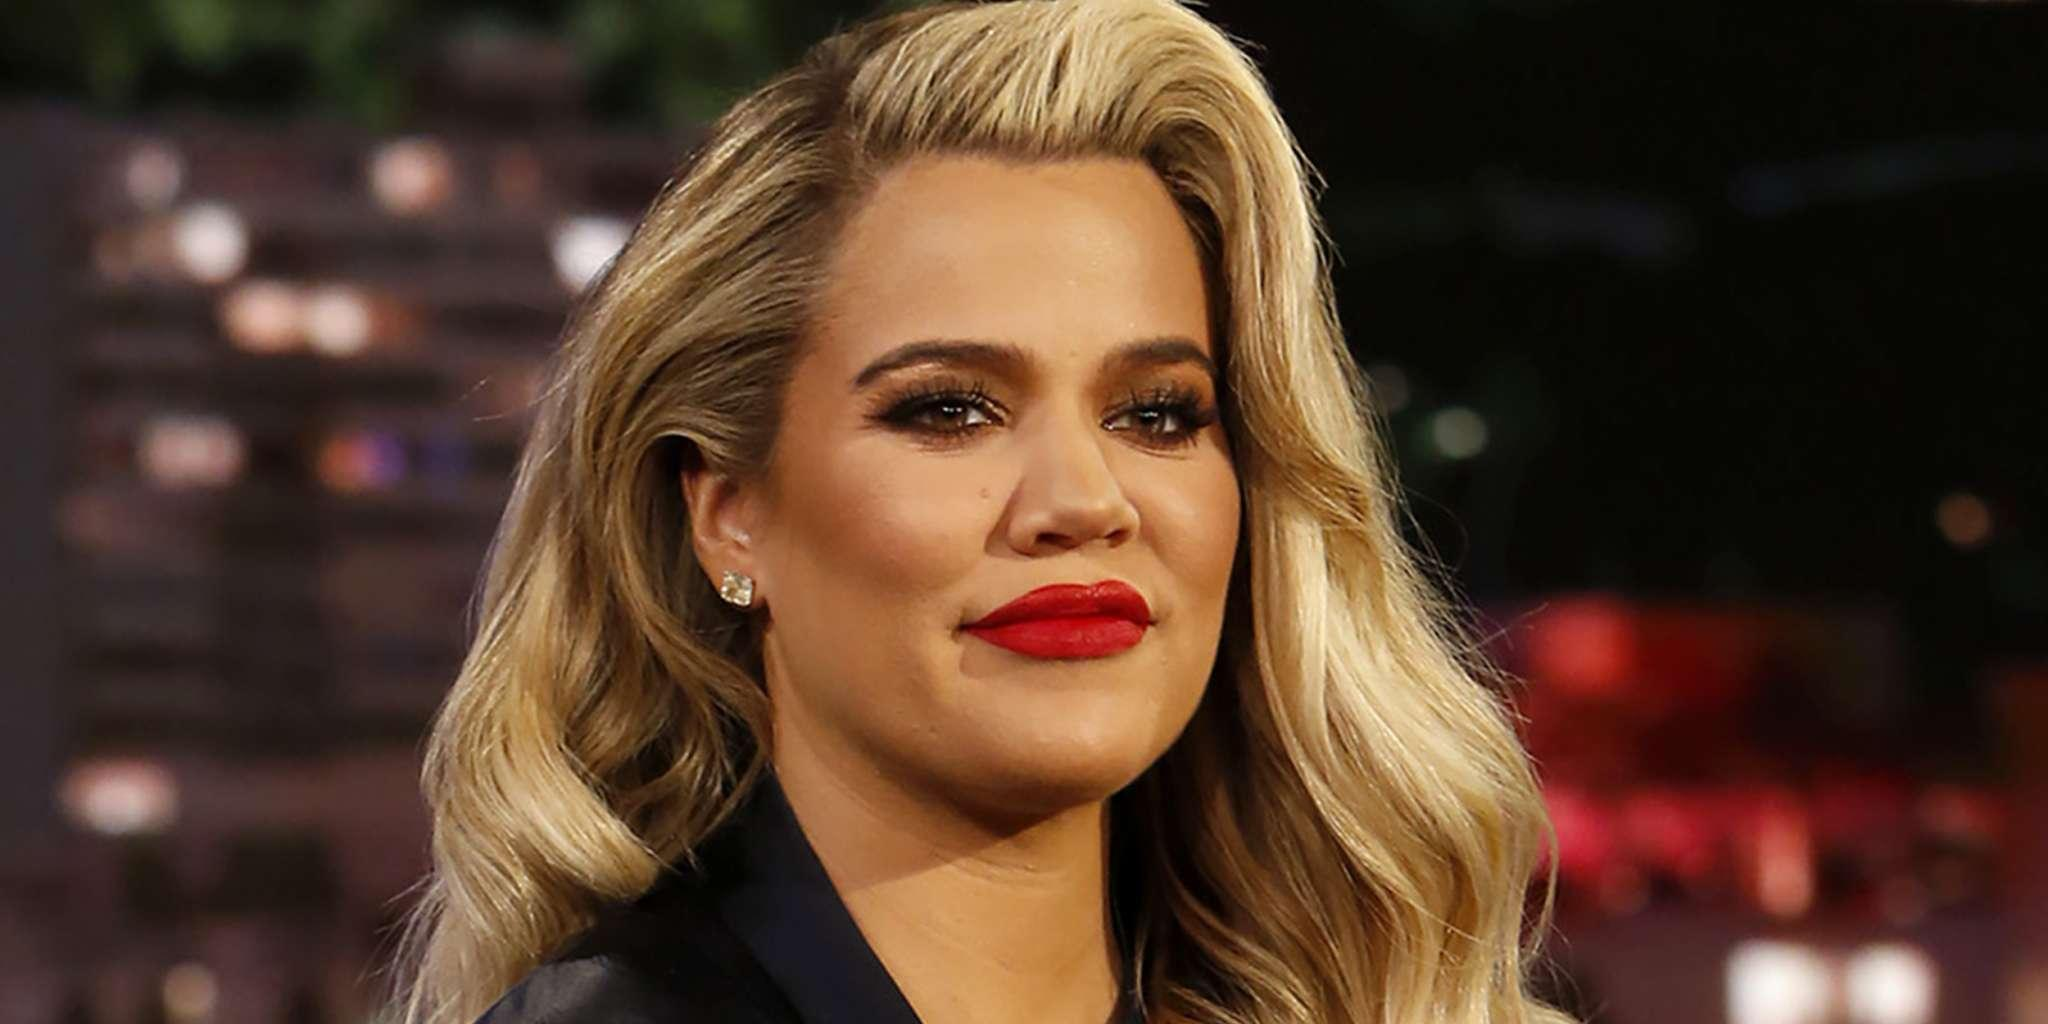 Khloe Kardashian Sparks Engagement Rumors With The Latest Video In Which She Dances Around Tristan And He Ignores Her